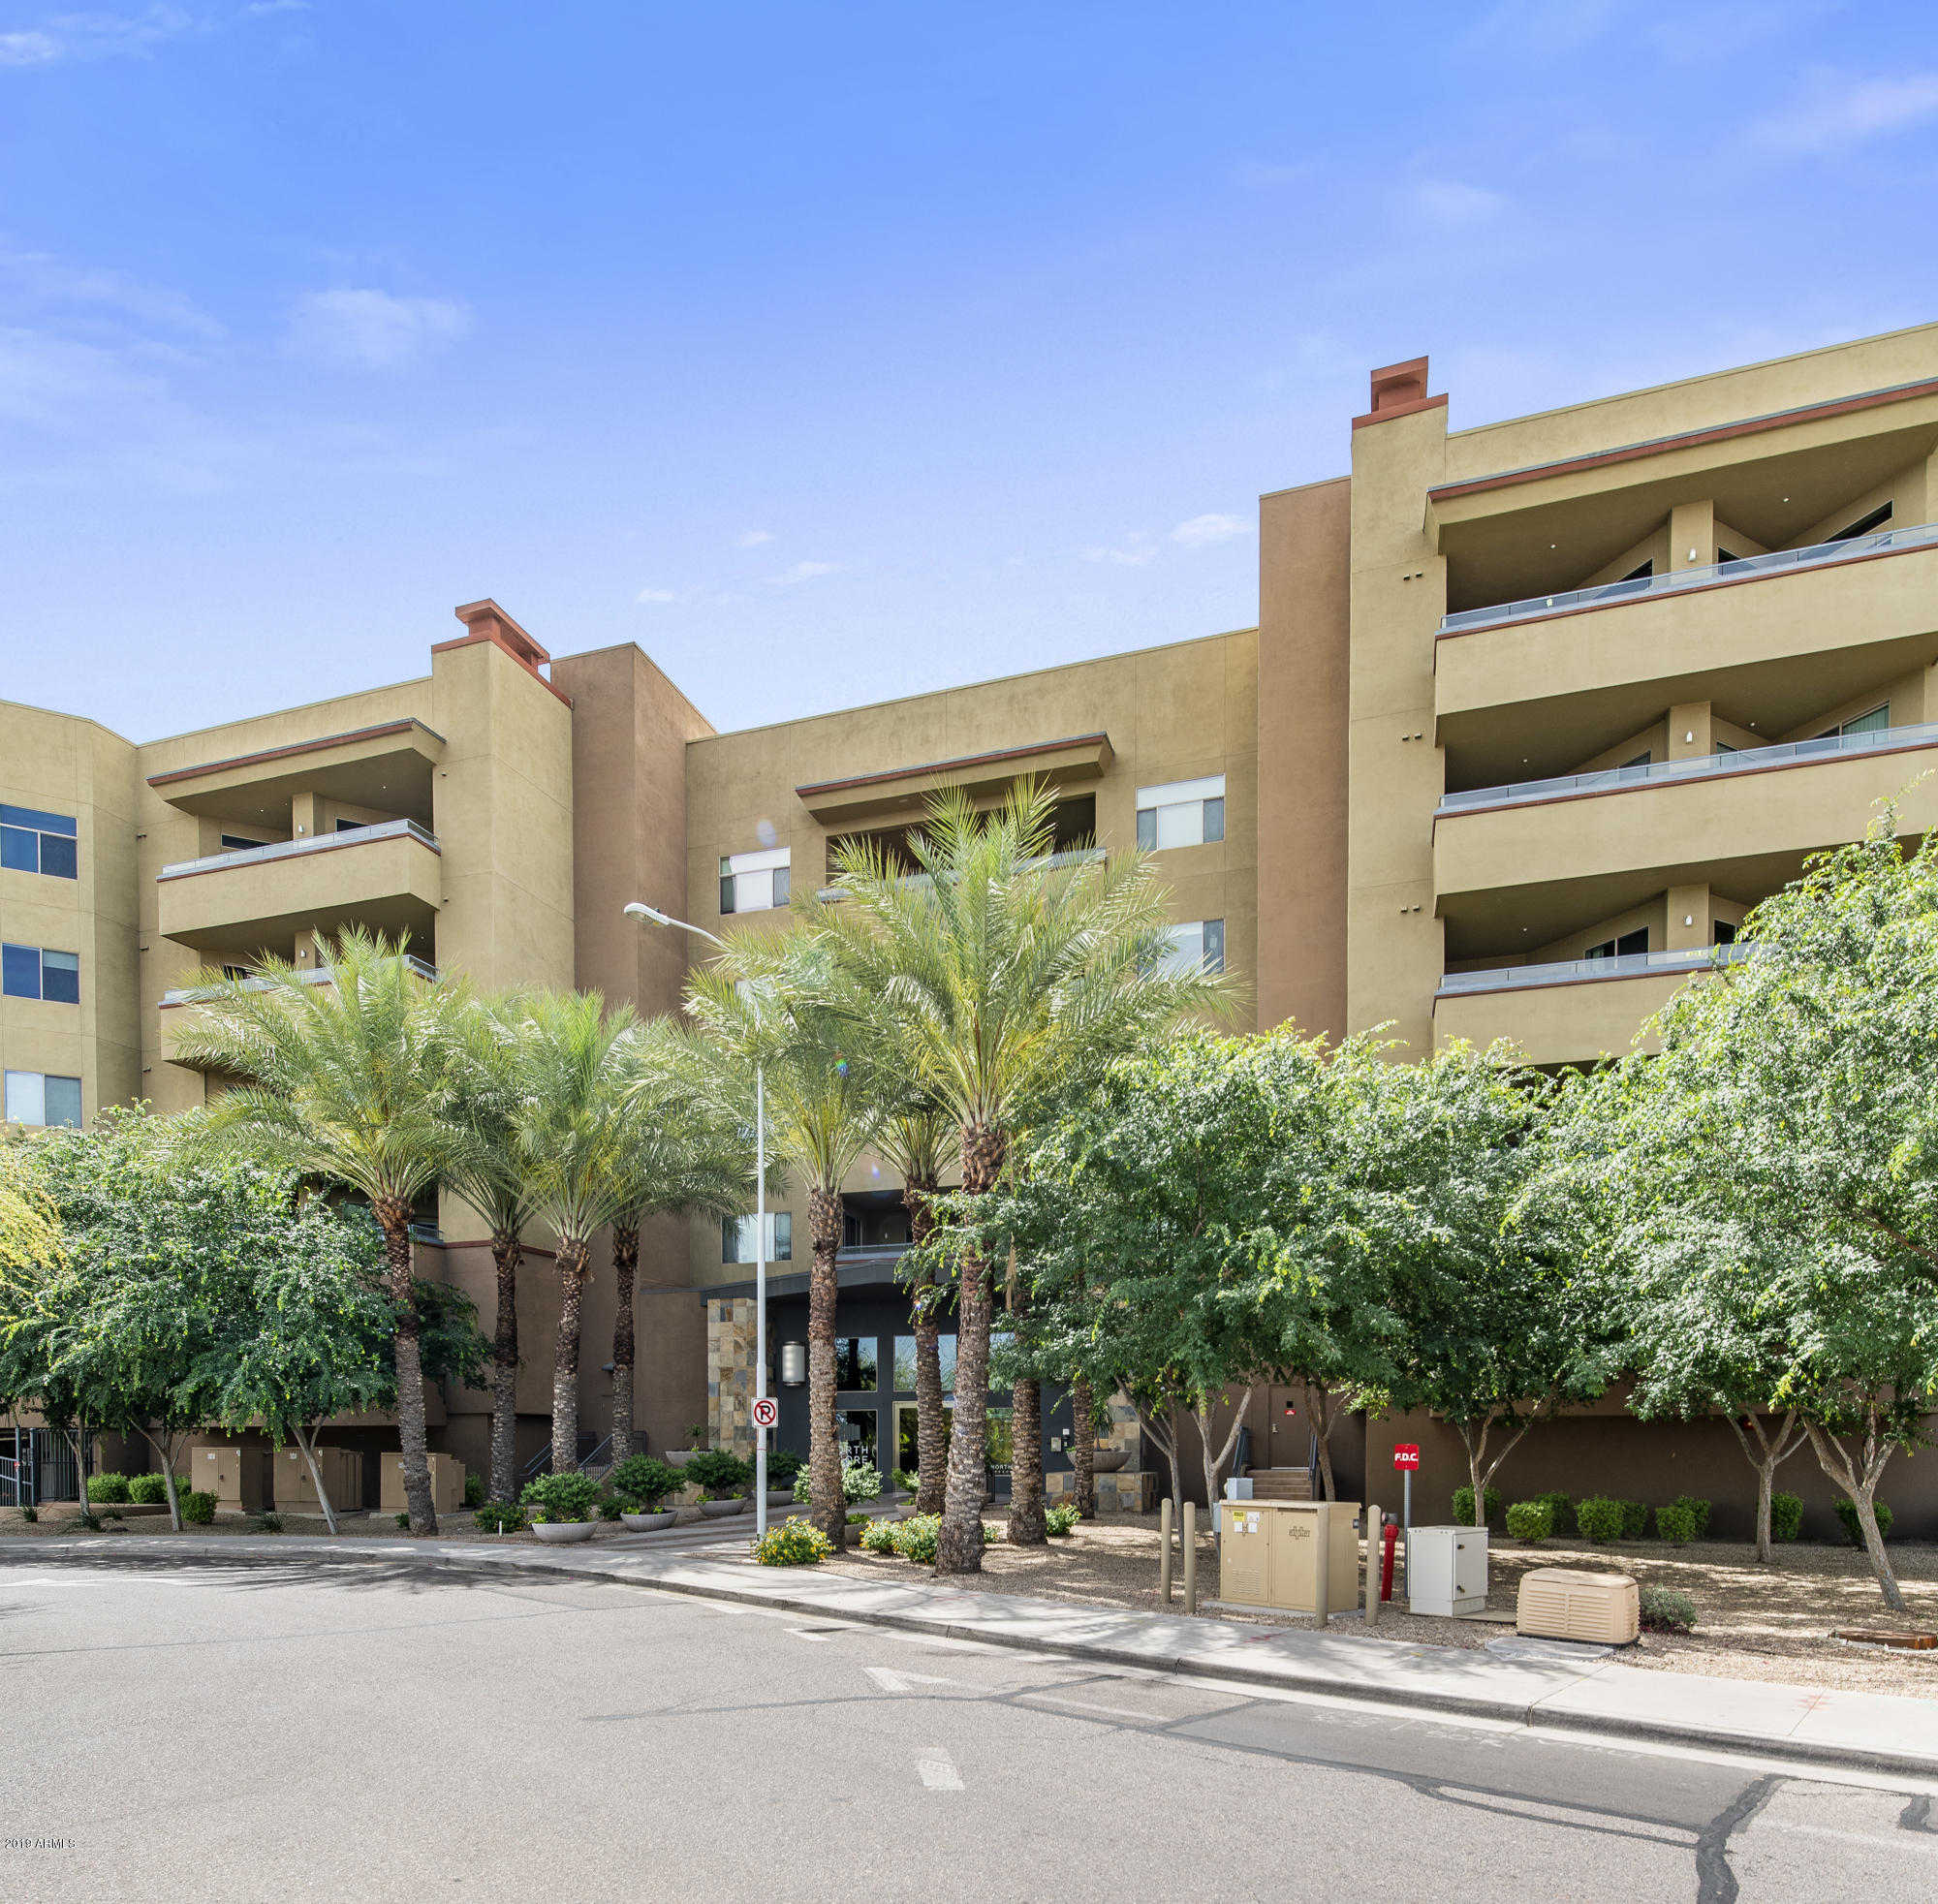 MLS 5923575 945 E PLAYA DEL NORTE Drive Unit 5021, Tempe, AZ 85281 Tempe AZ High Rise